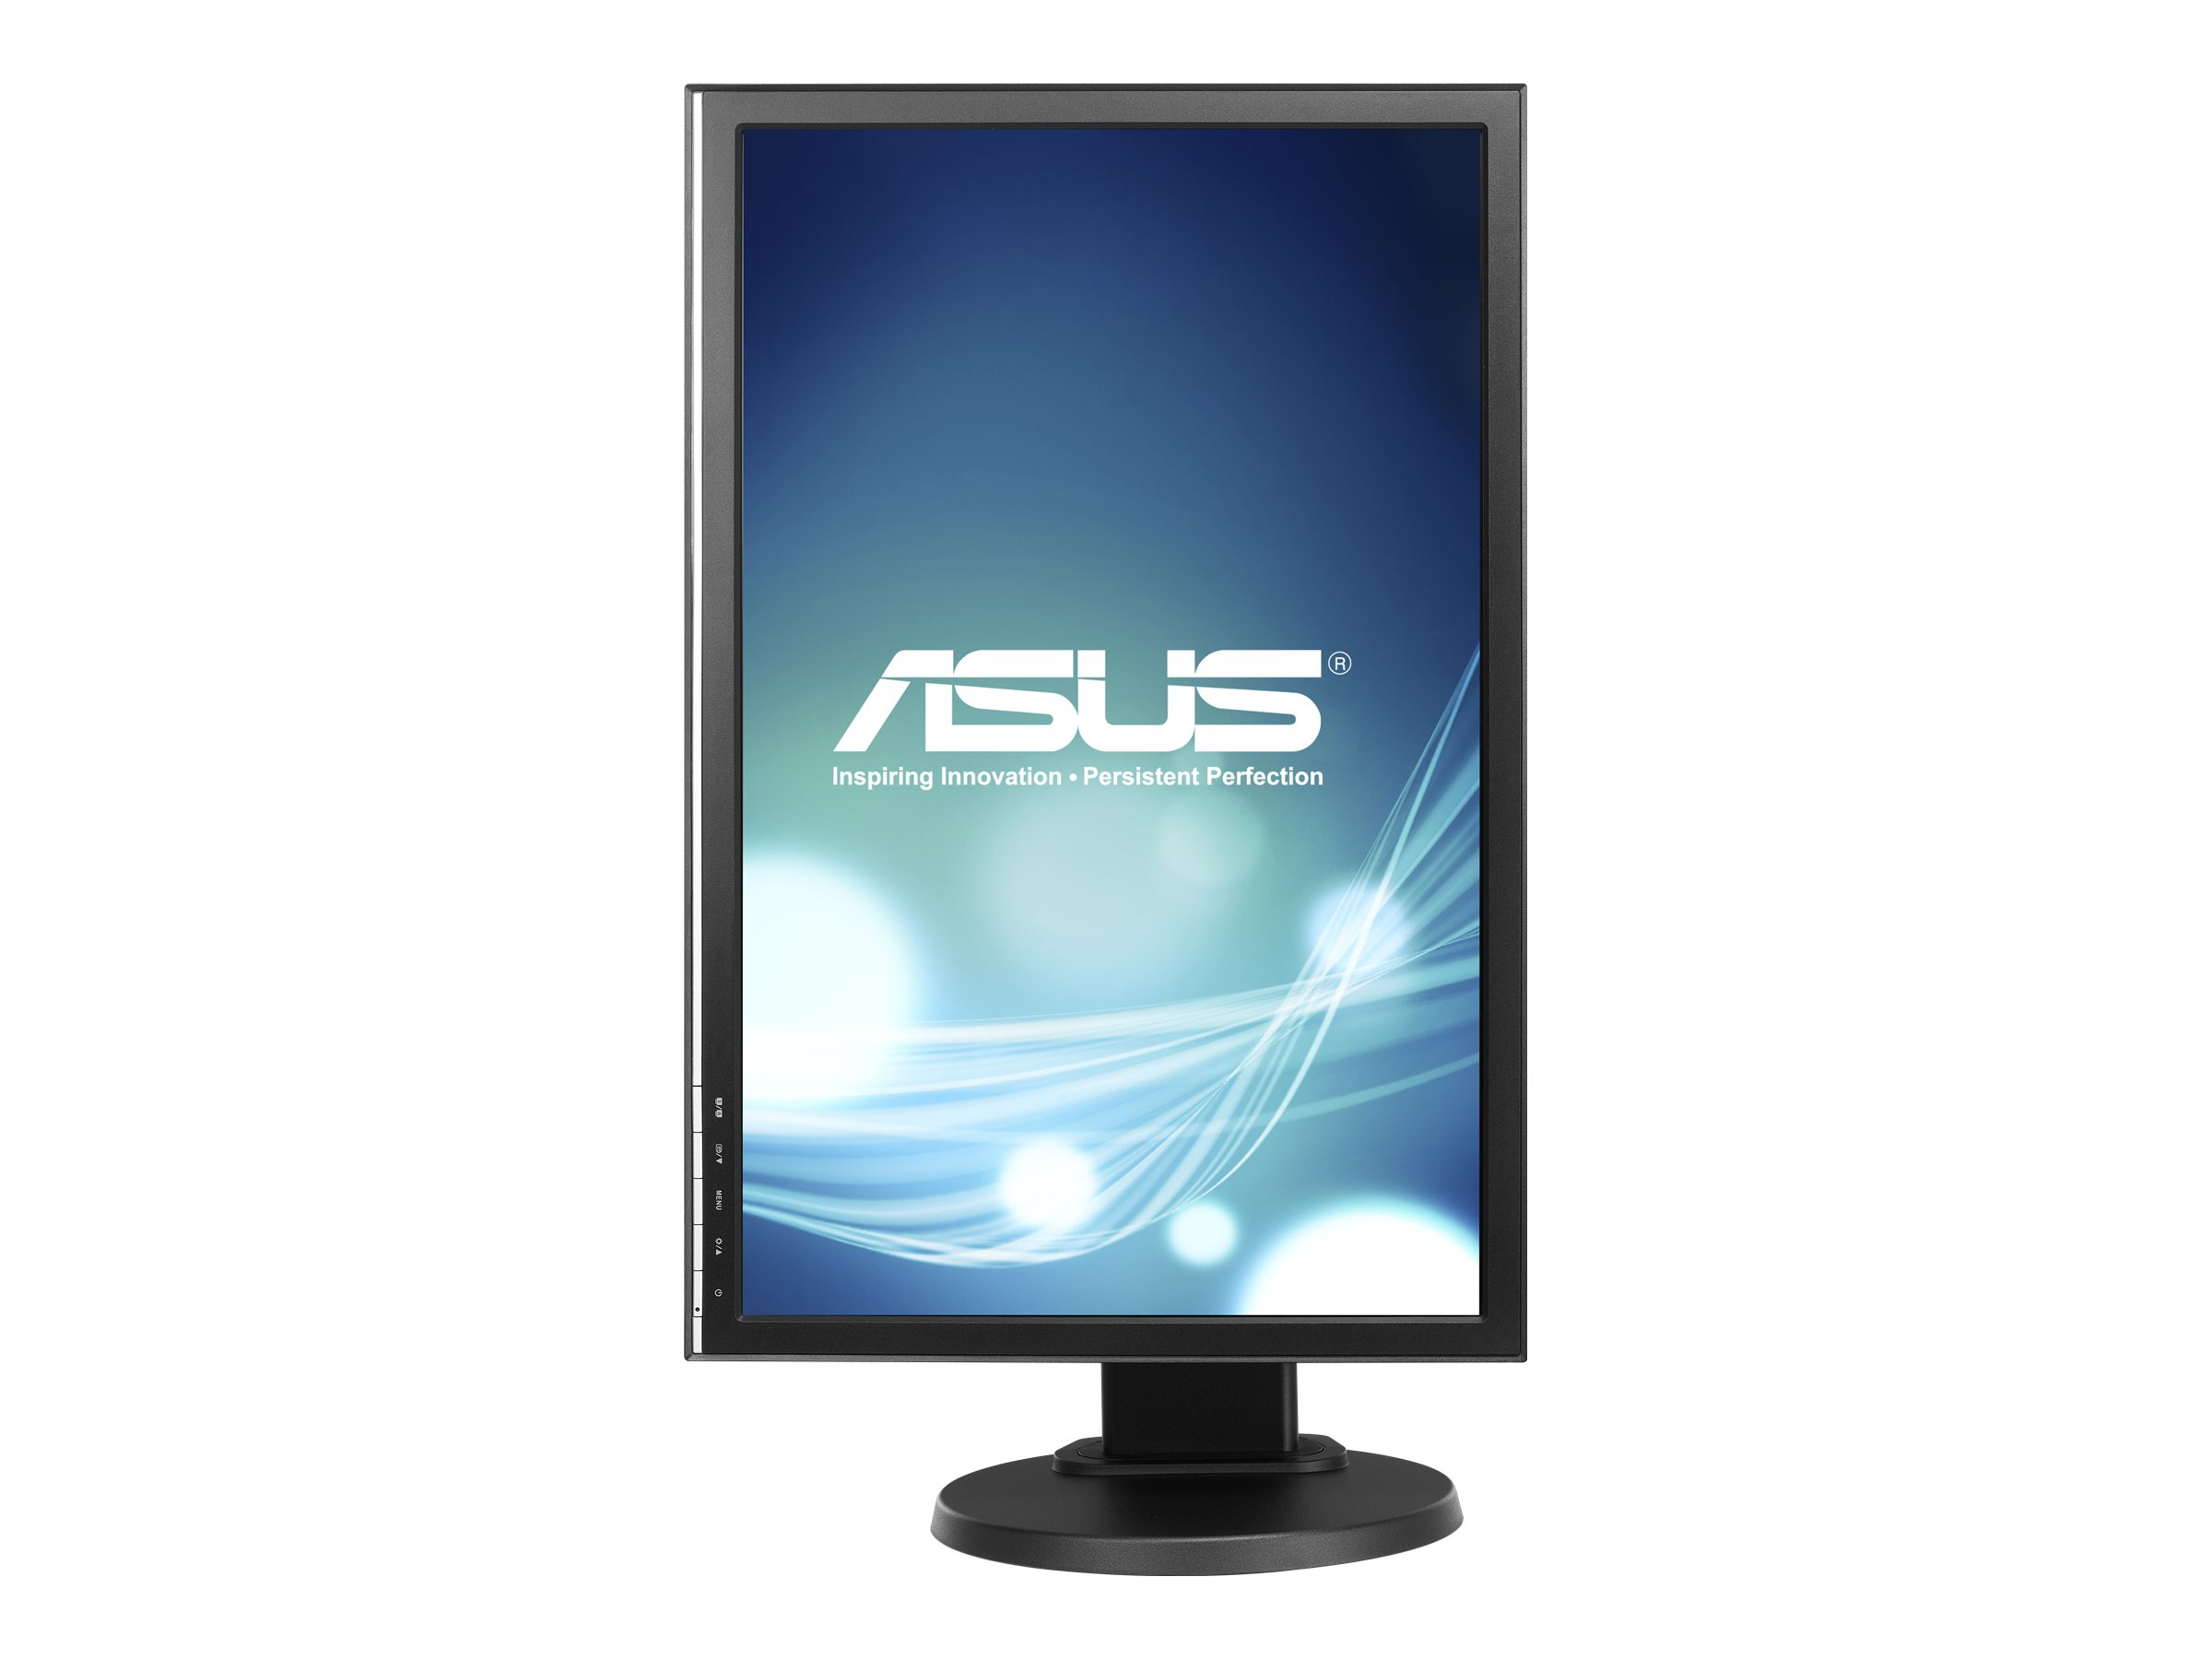 ASUS VW22ATL - LED-Monitor - 55.9 cm (22